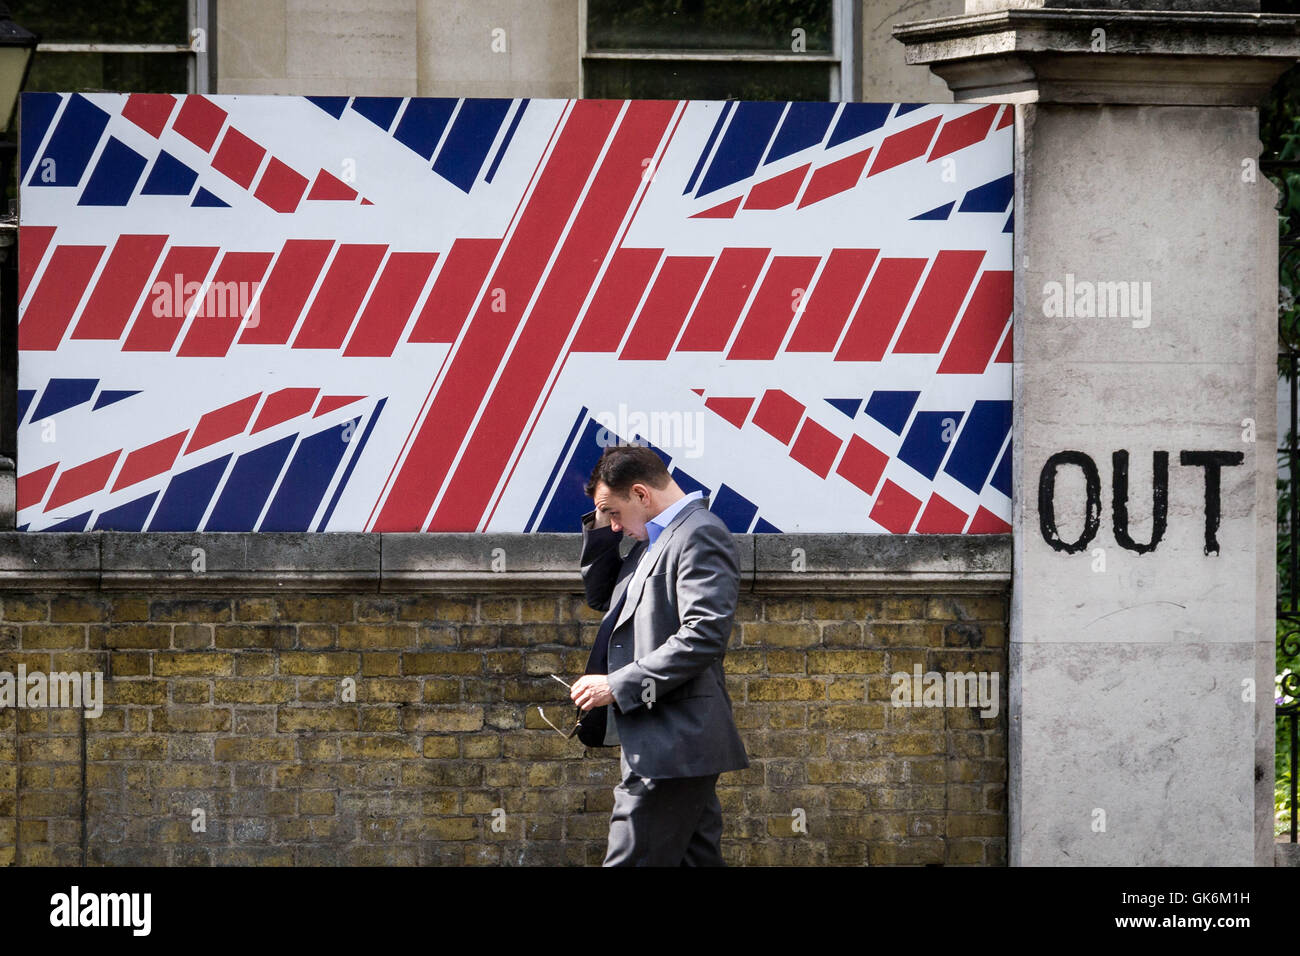 UK Brexit documentary image. A London city worker passes a British union flag wall design. 'OUT' is written - Stock Image